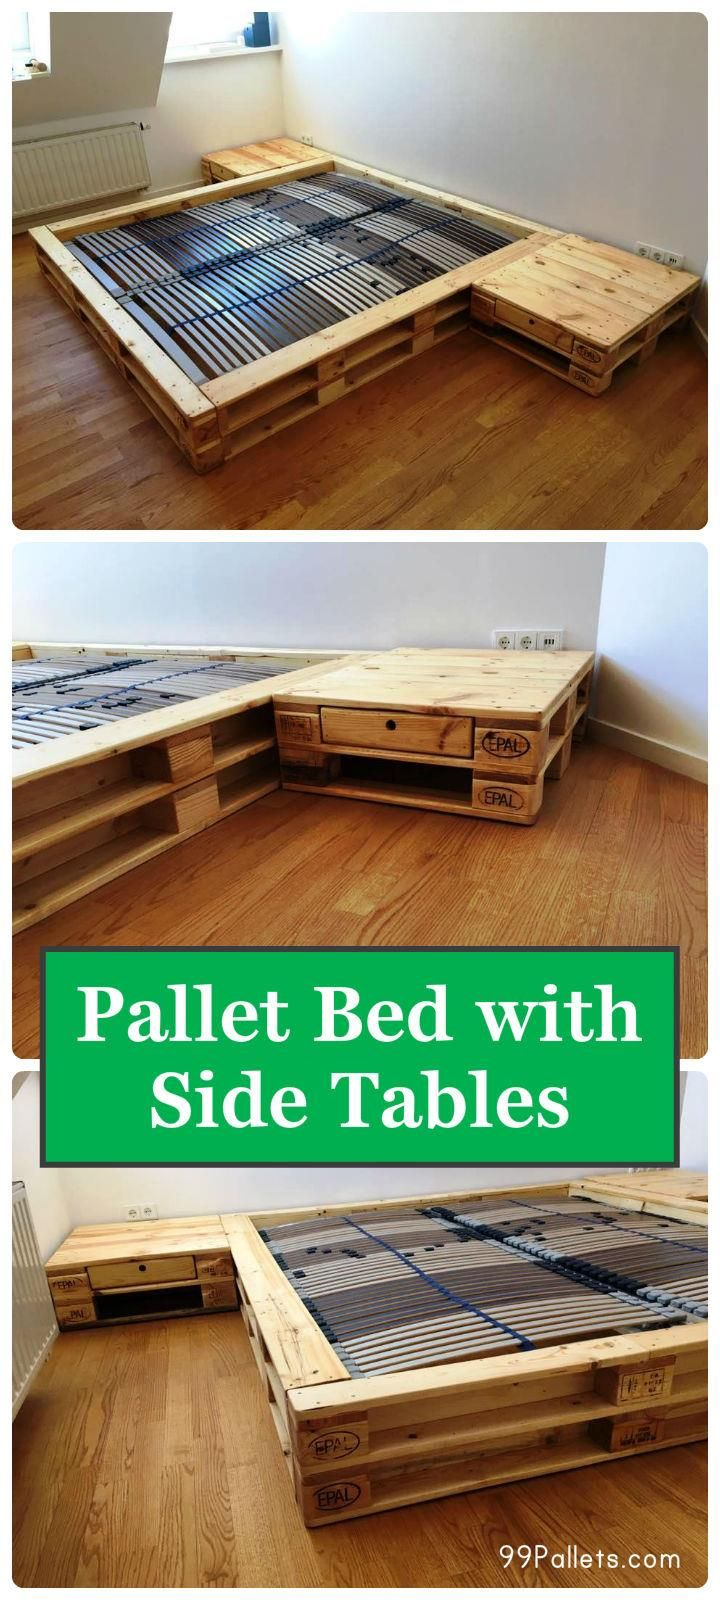 Cozy-Pallet-Bed-with-Side-Tables.jpg (720×1600)